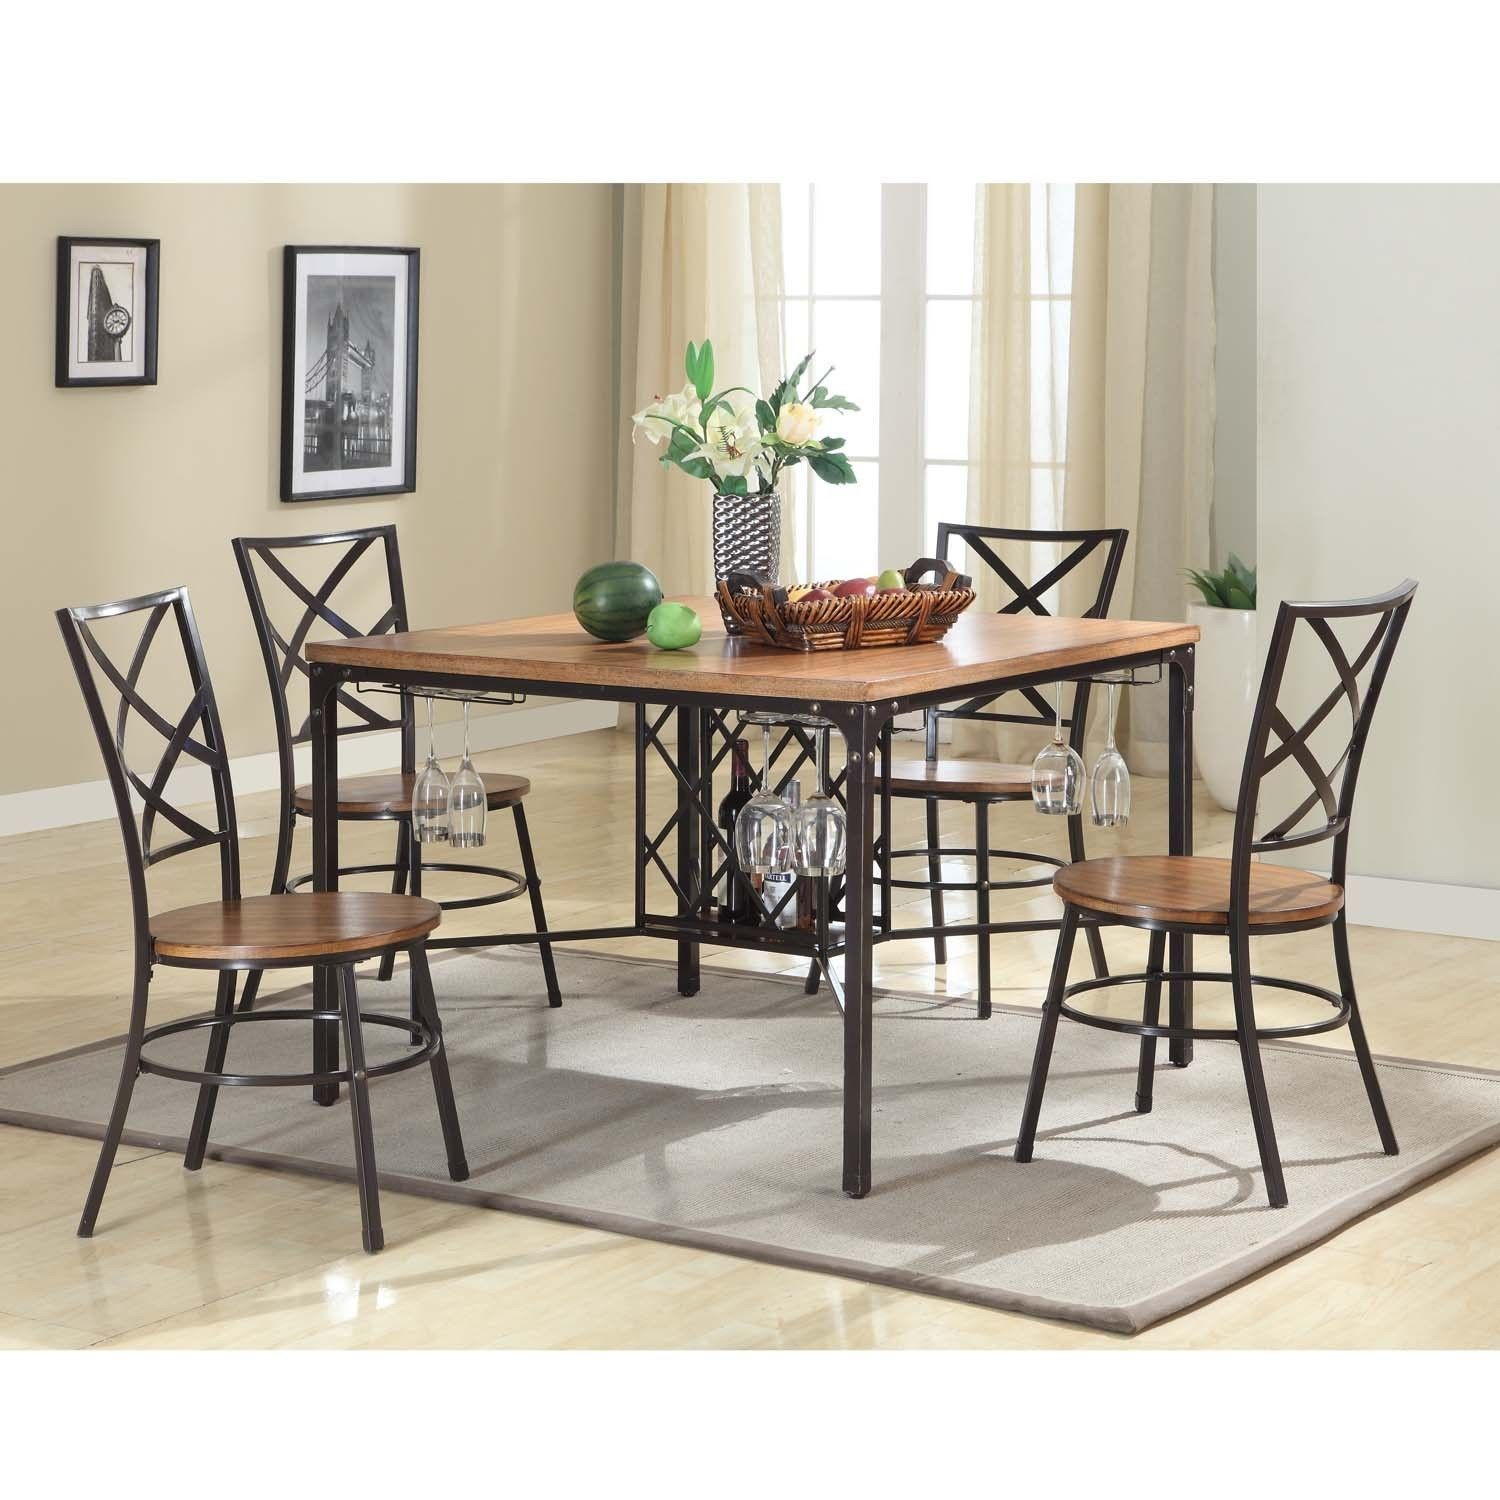 Baxton Studio Anna Vintage Industrial 5 Piece Dining Set   Overstock  Shopping   Big Discounts